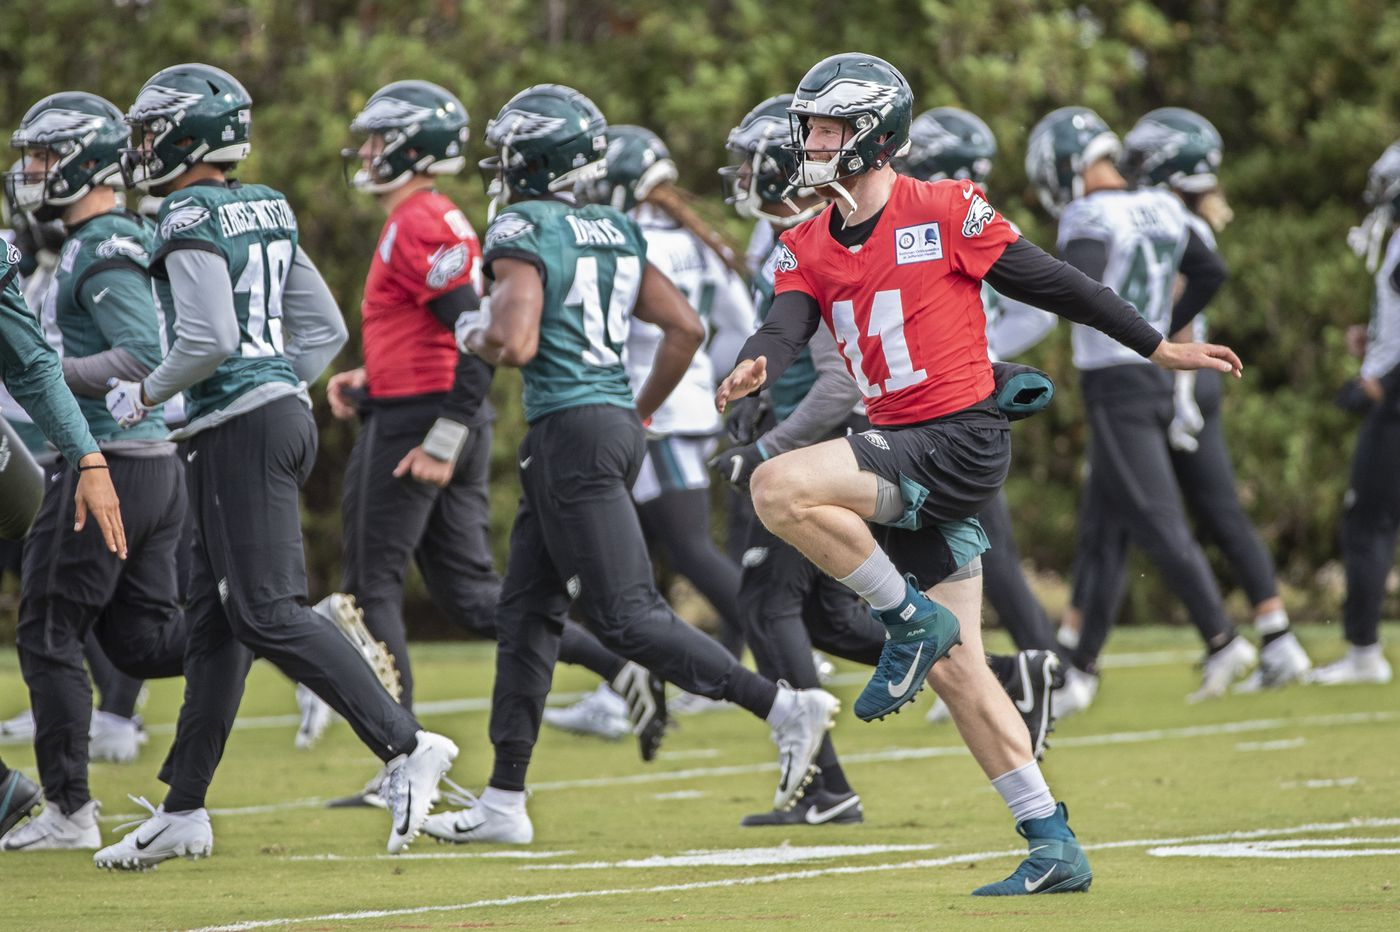 Eagles head to Dallas with first place on the line; Philly to honor a music legend | Morning Newsletter